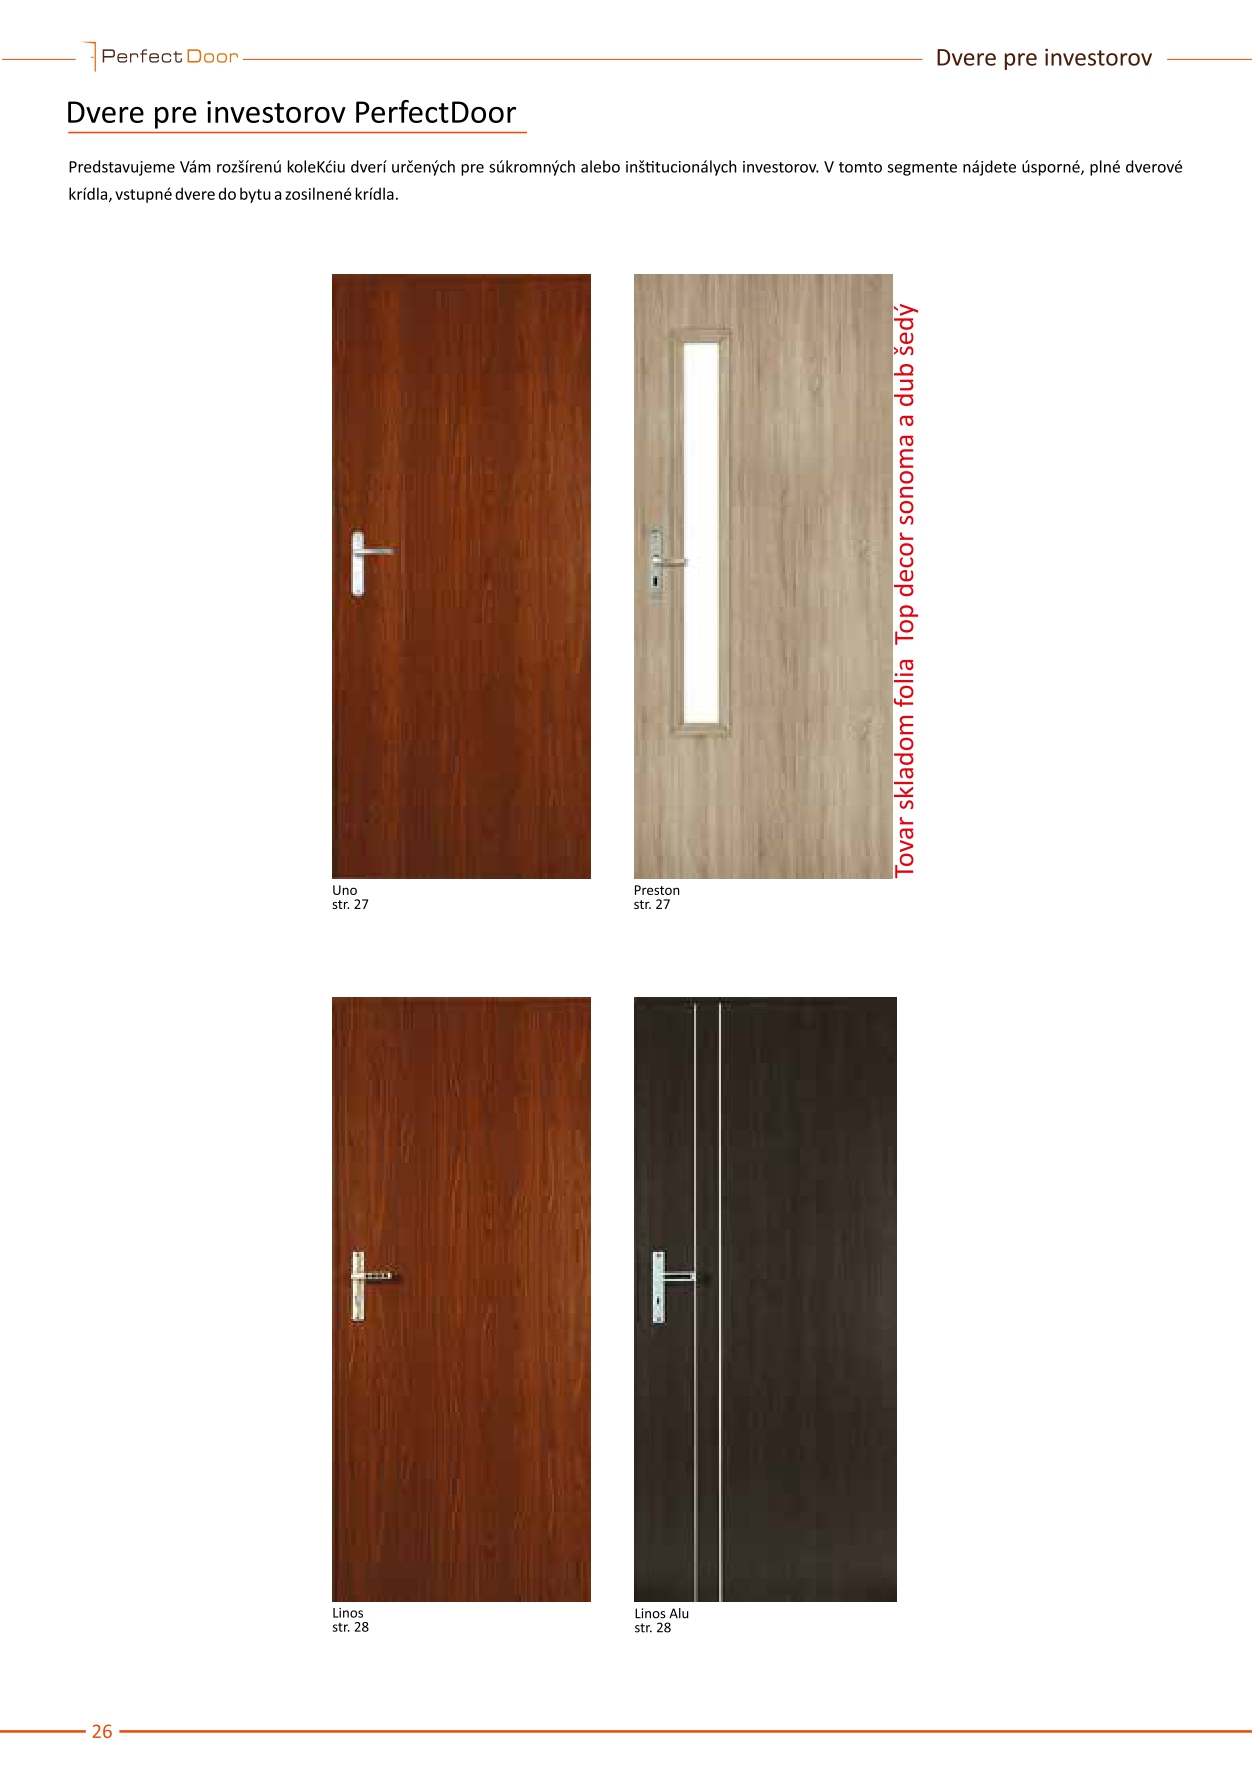 Perfectdoor katalog  1 2019 pages-to-jpg-0026